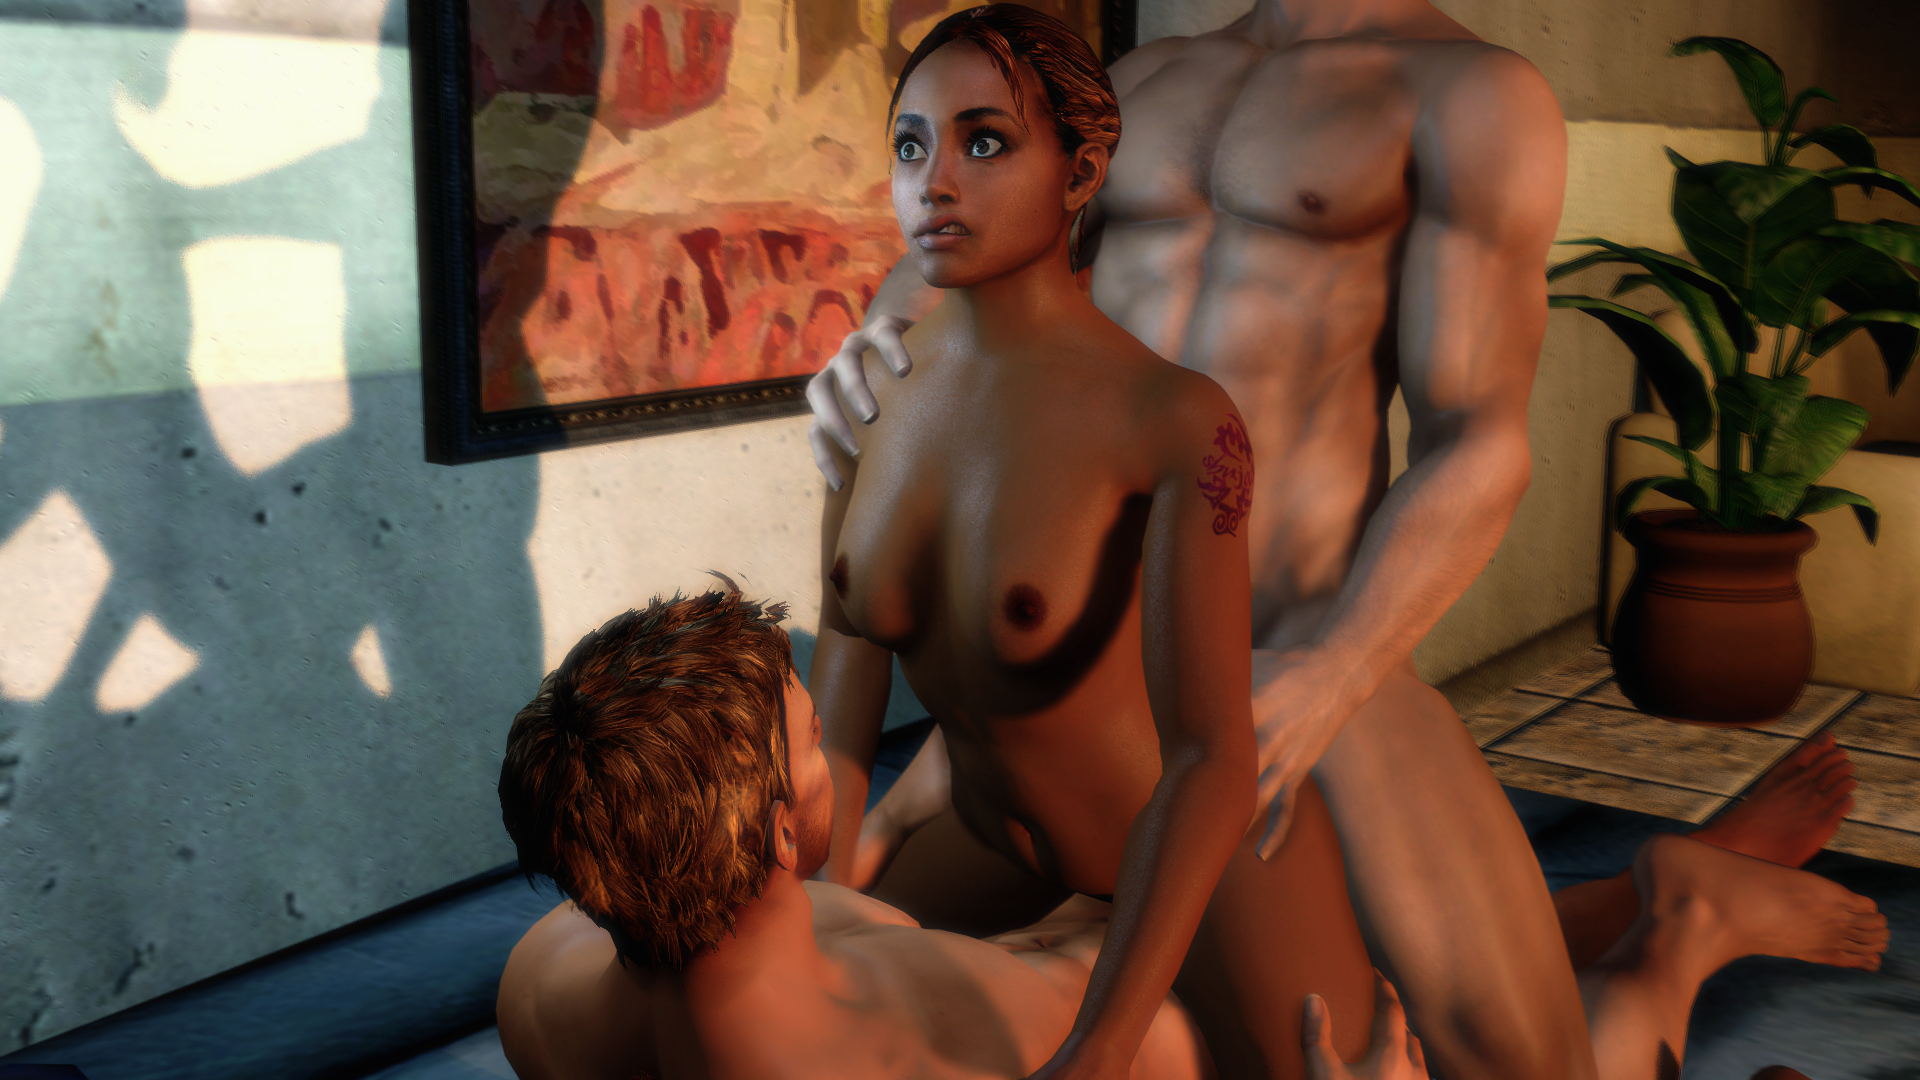 Free video game sheva alomar porn naked sluts